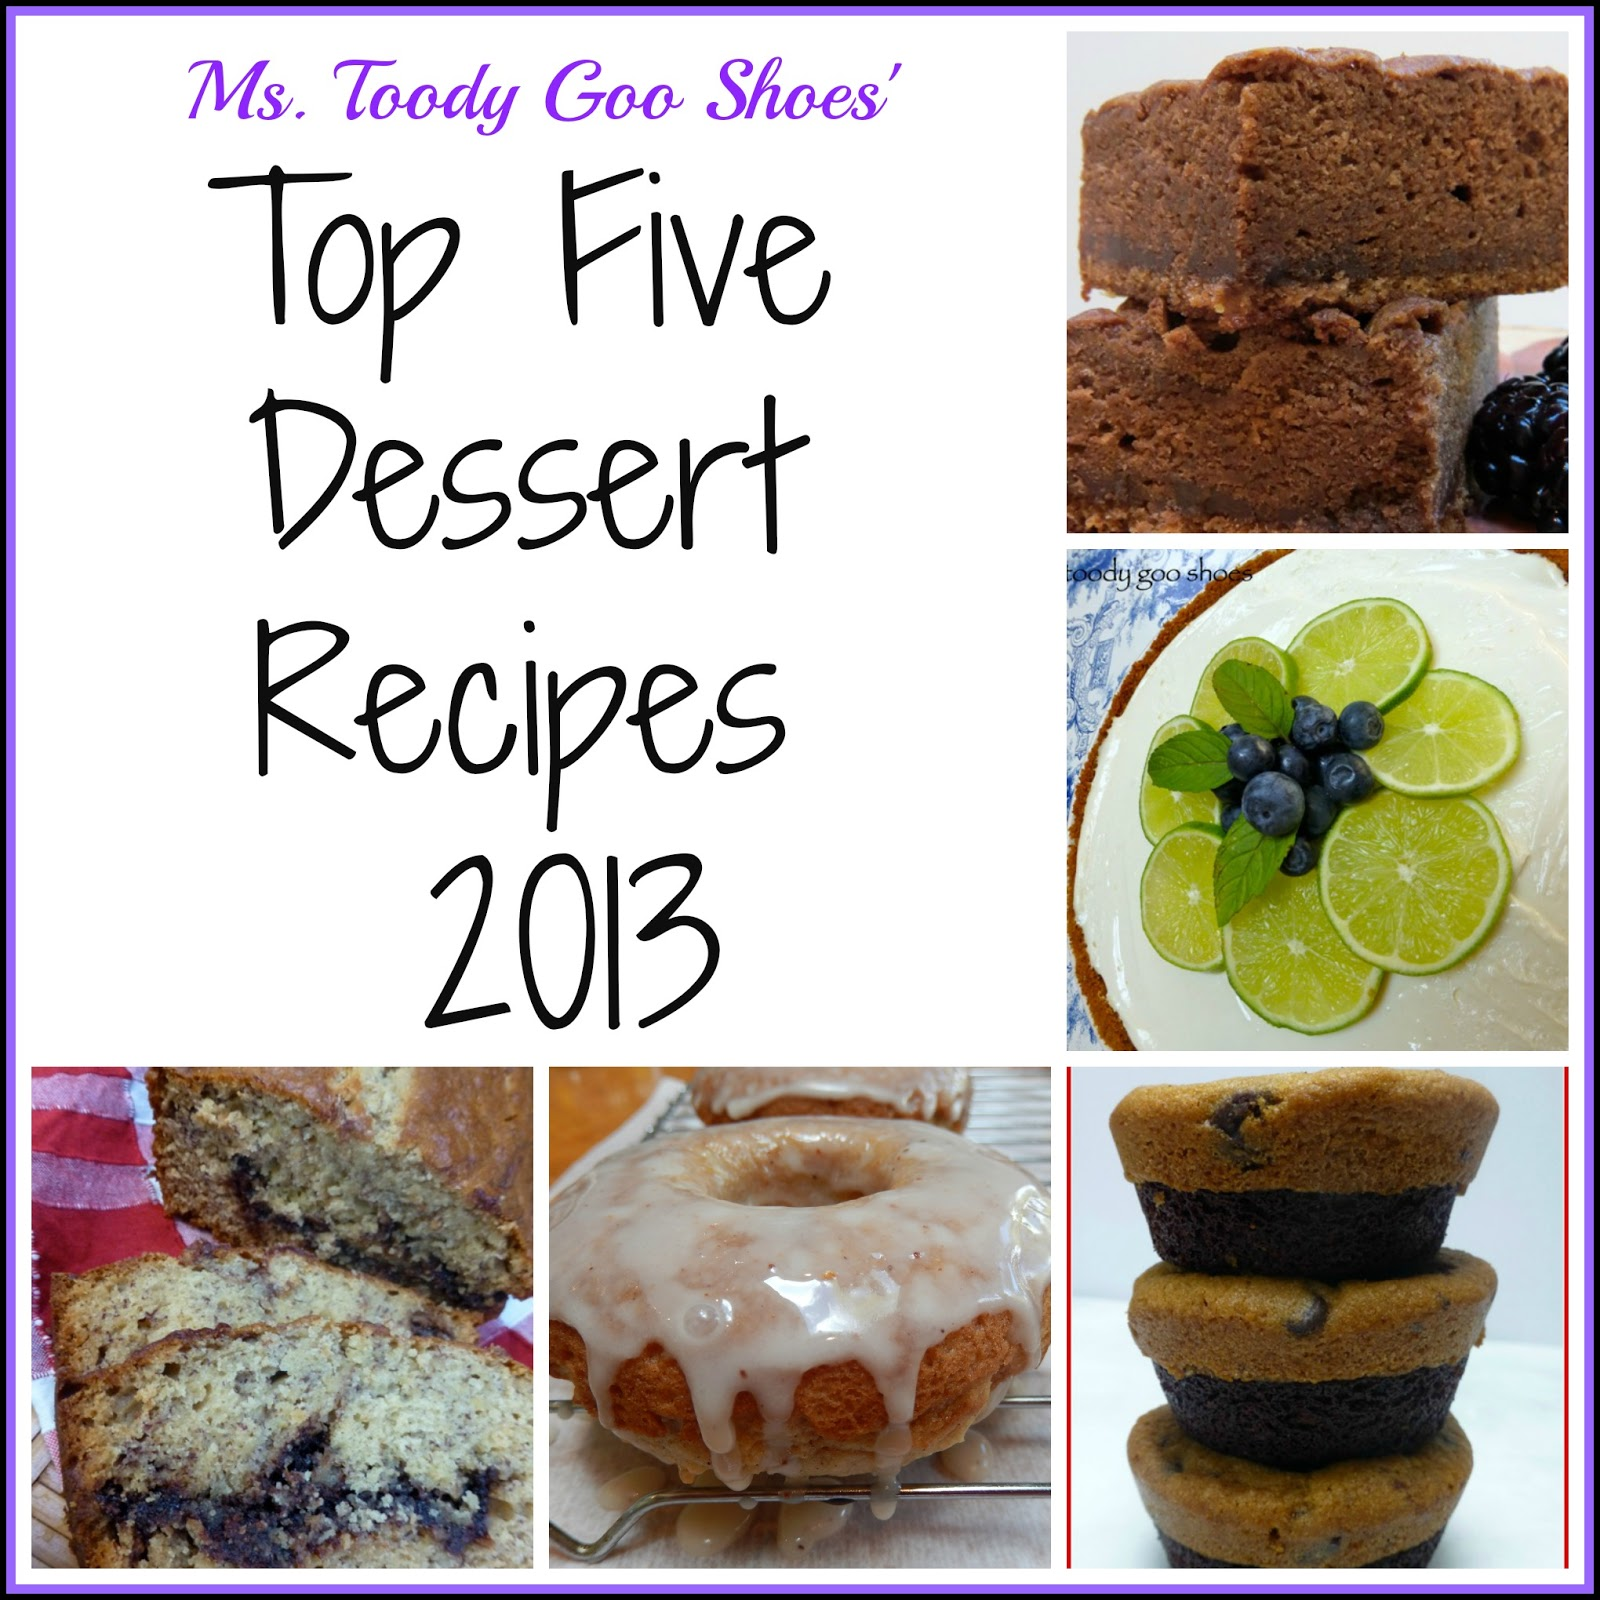 Top Five Dessert Recipes of 2013 --- by Ms. Toody Goo Shoes